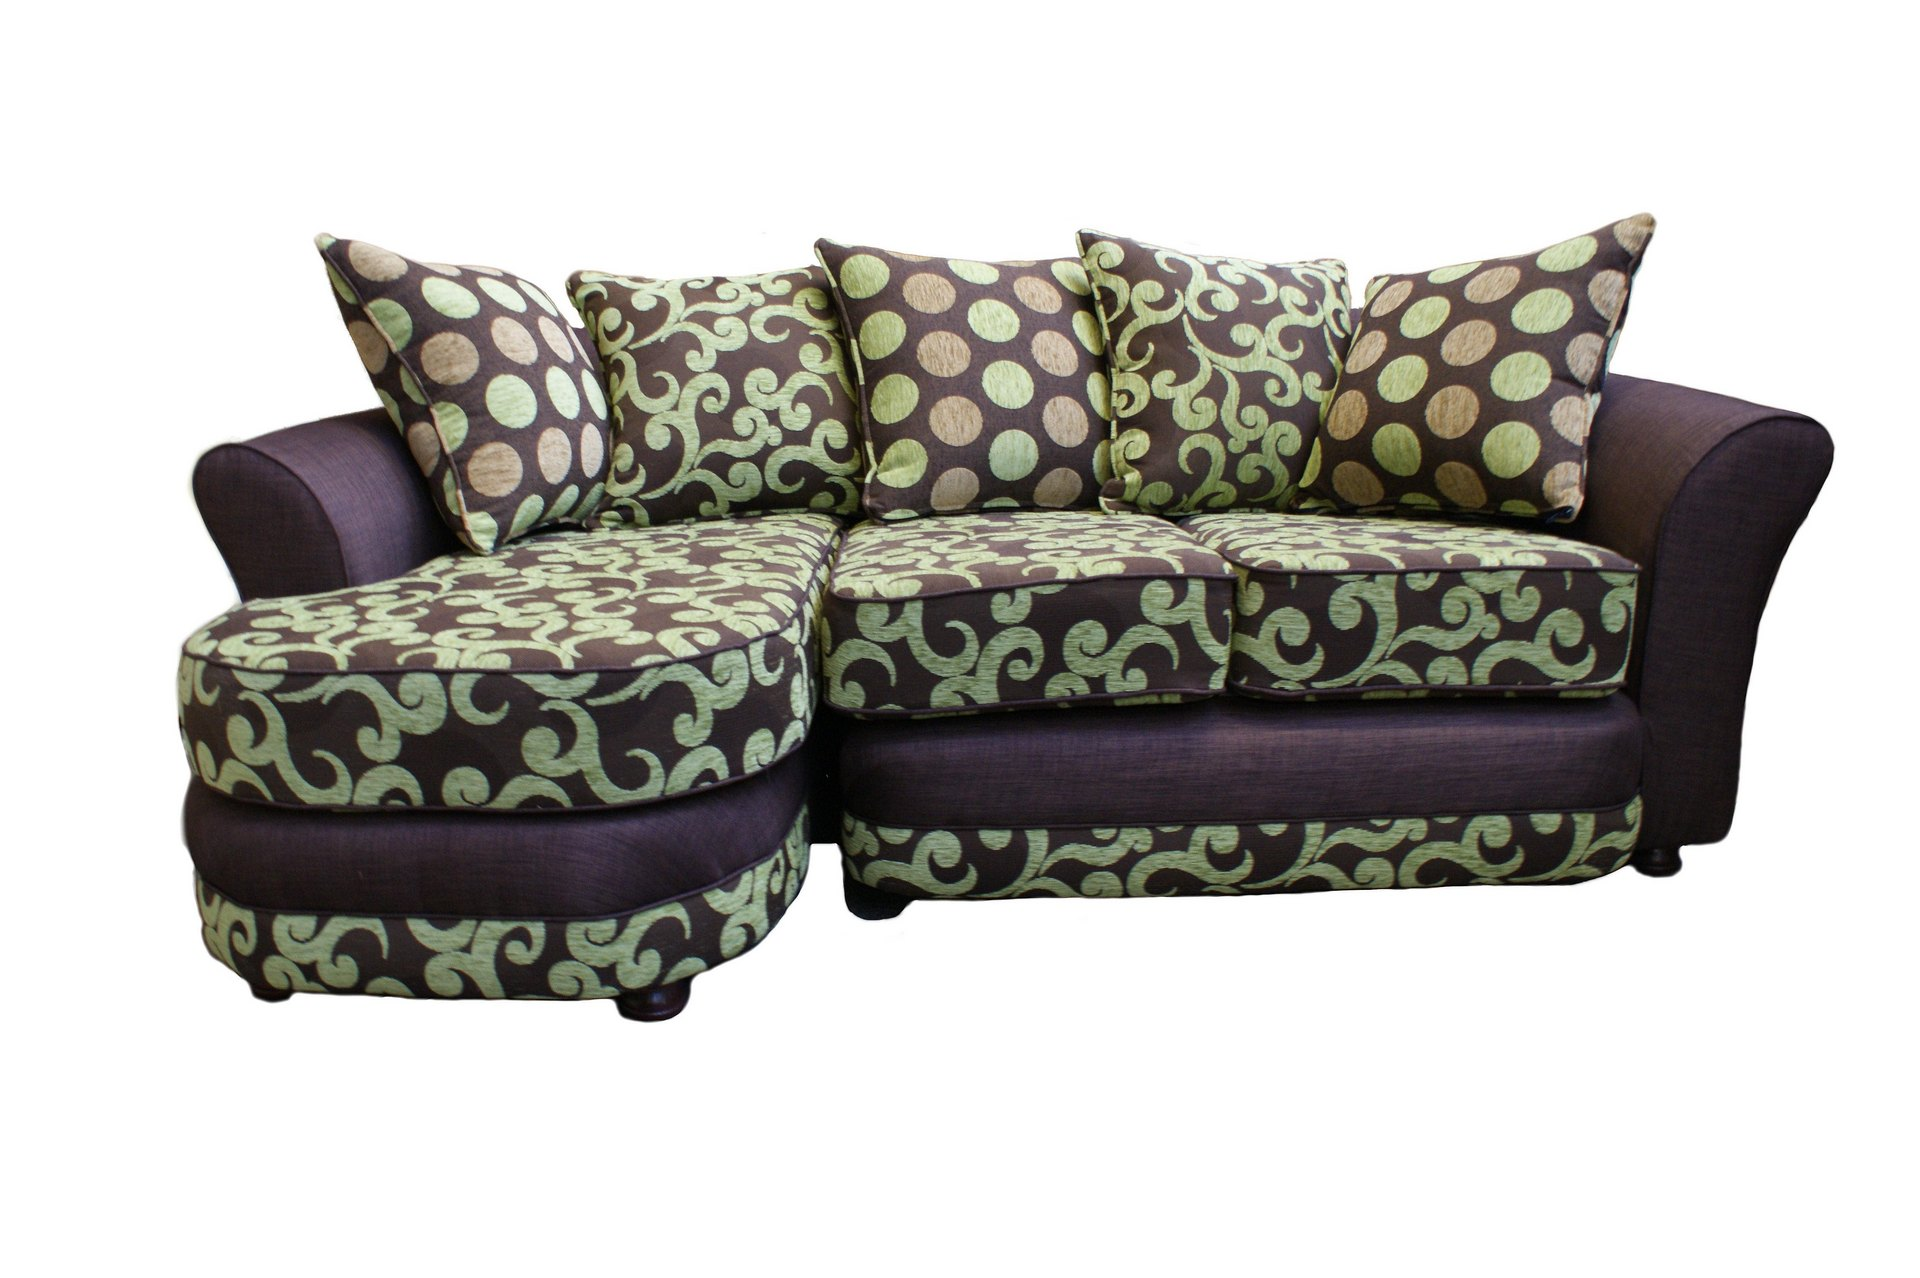 Online sofa sale designersofas4u blog for Furniture sofa sale